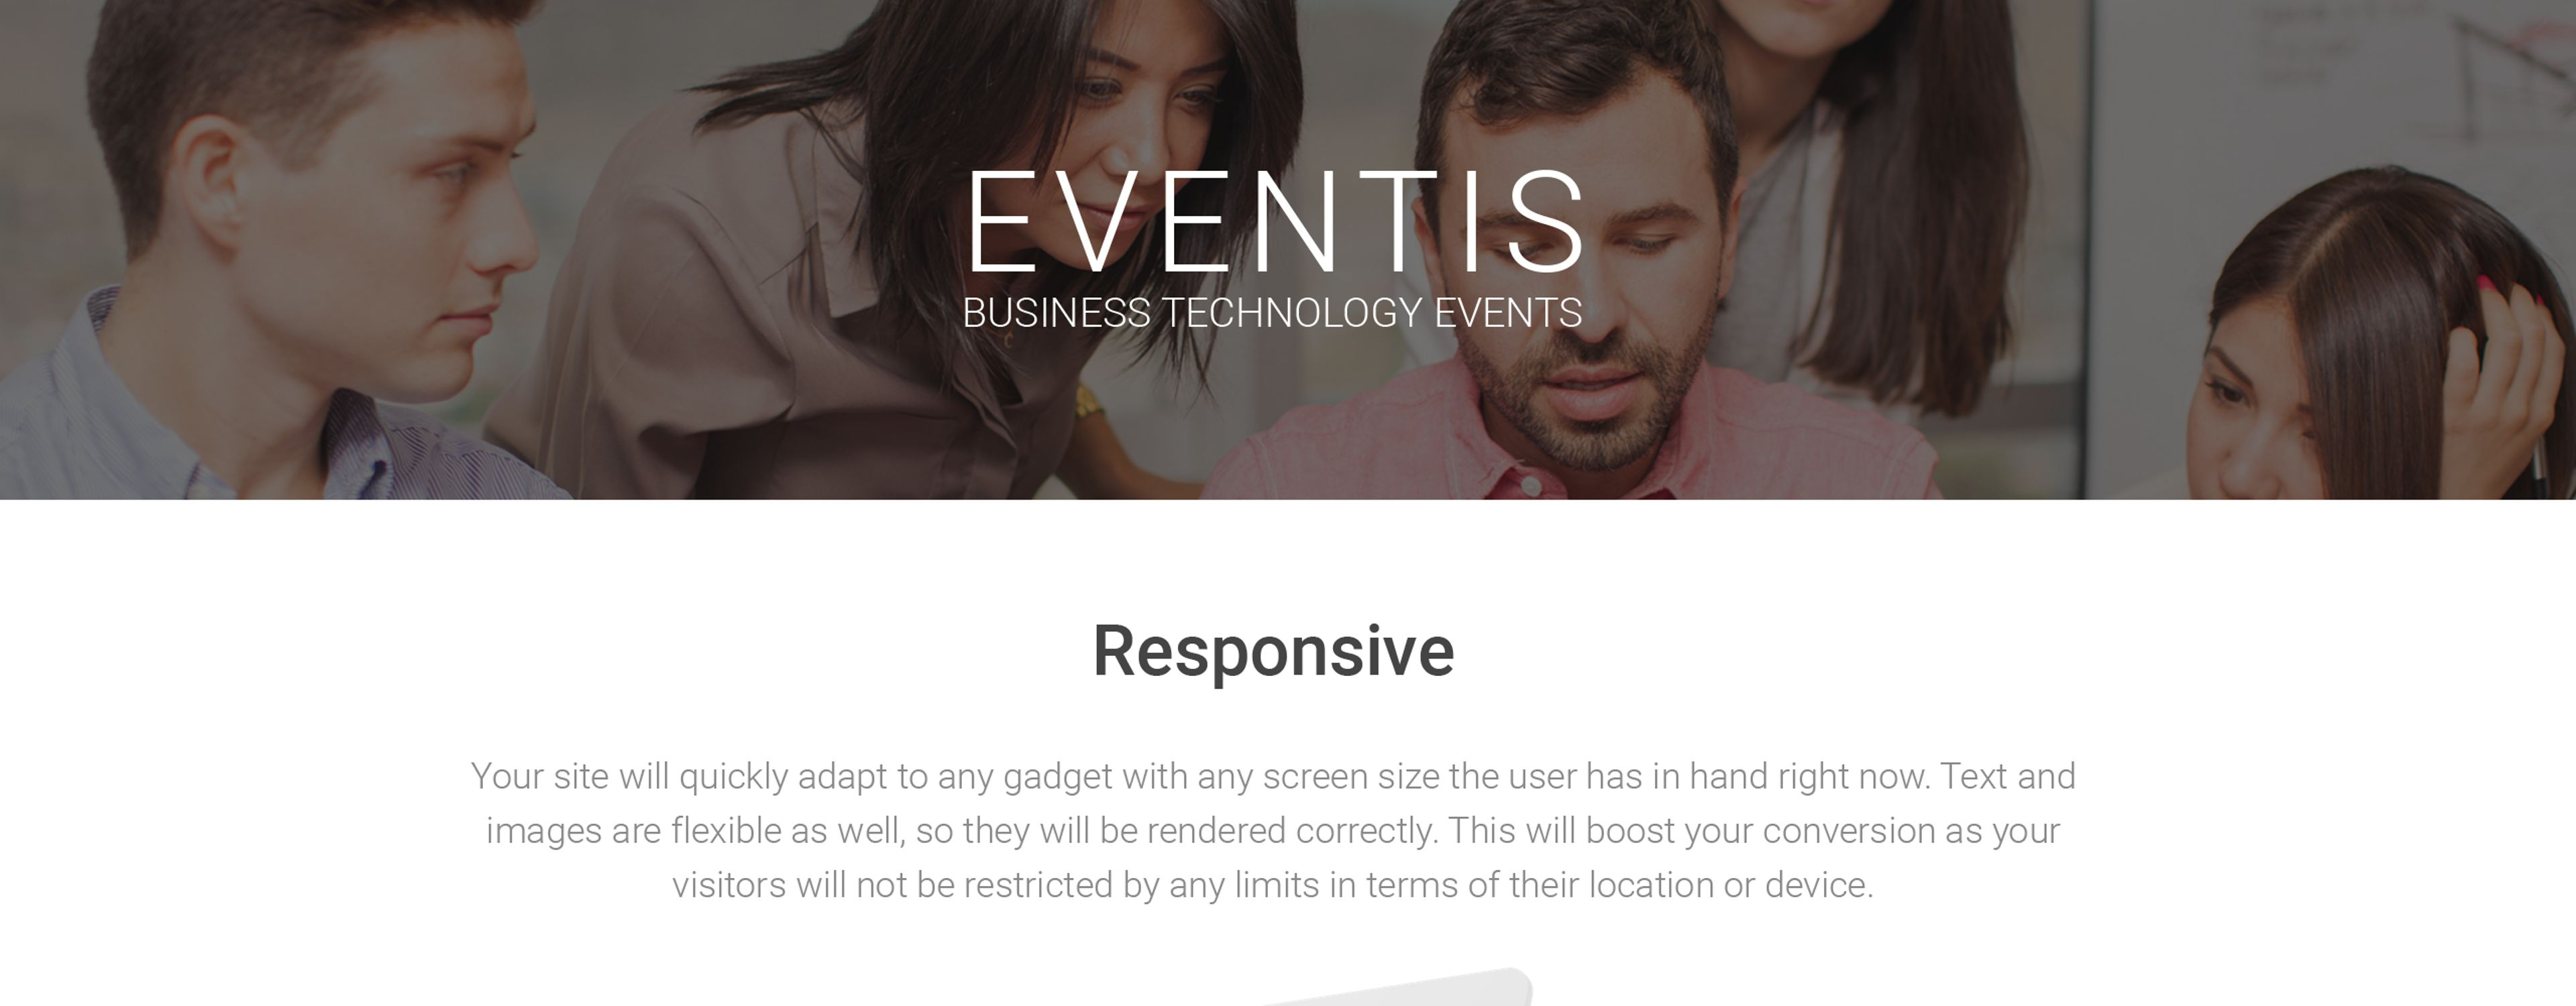 Eventis - Business Conference Joomla Template